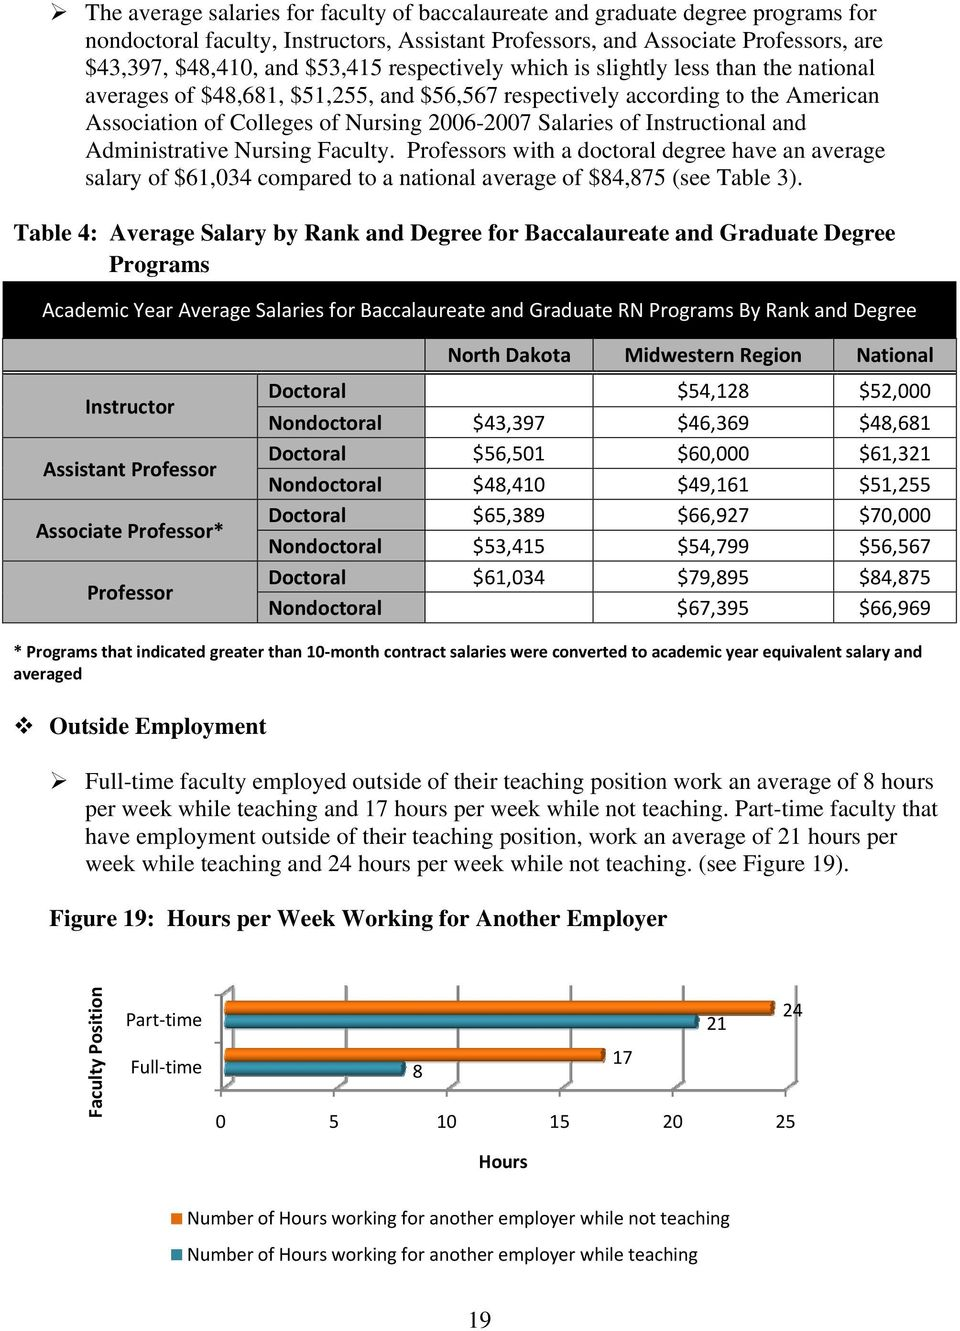 Instructional and Administrative Nursing Faculty. Professors with a doctoral degree have an average salary of $61,034 compared to a national average of $84,875 (see Table 3).